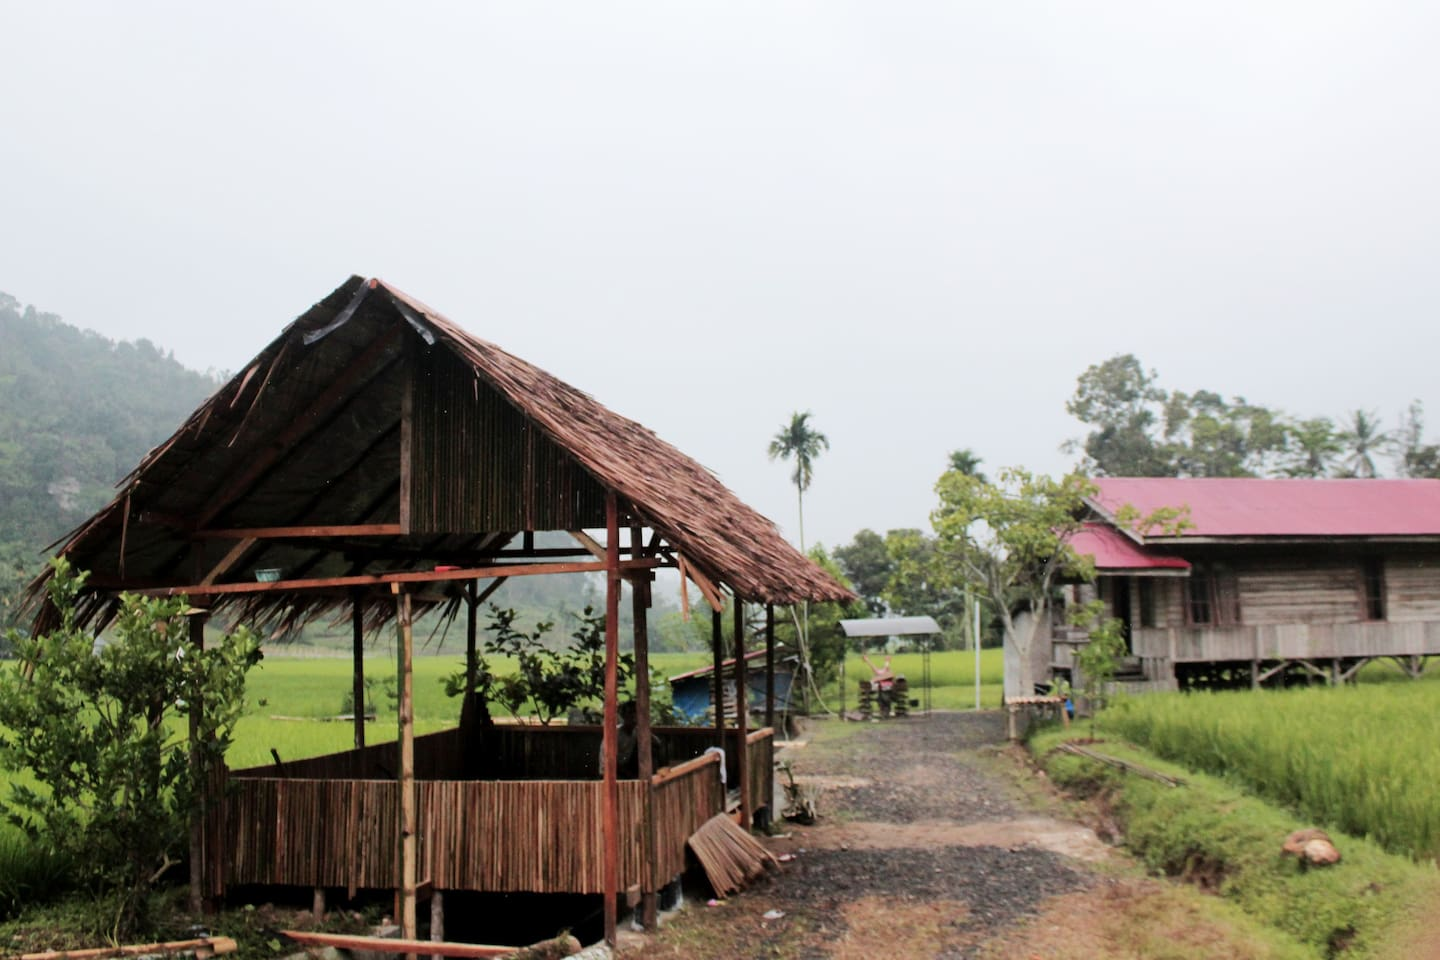 The new exotic place to stay in Harau Valley, West Sumatra.